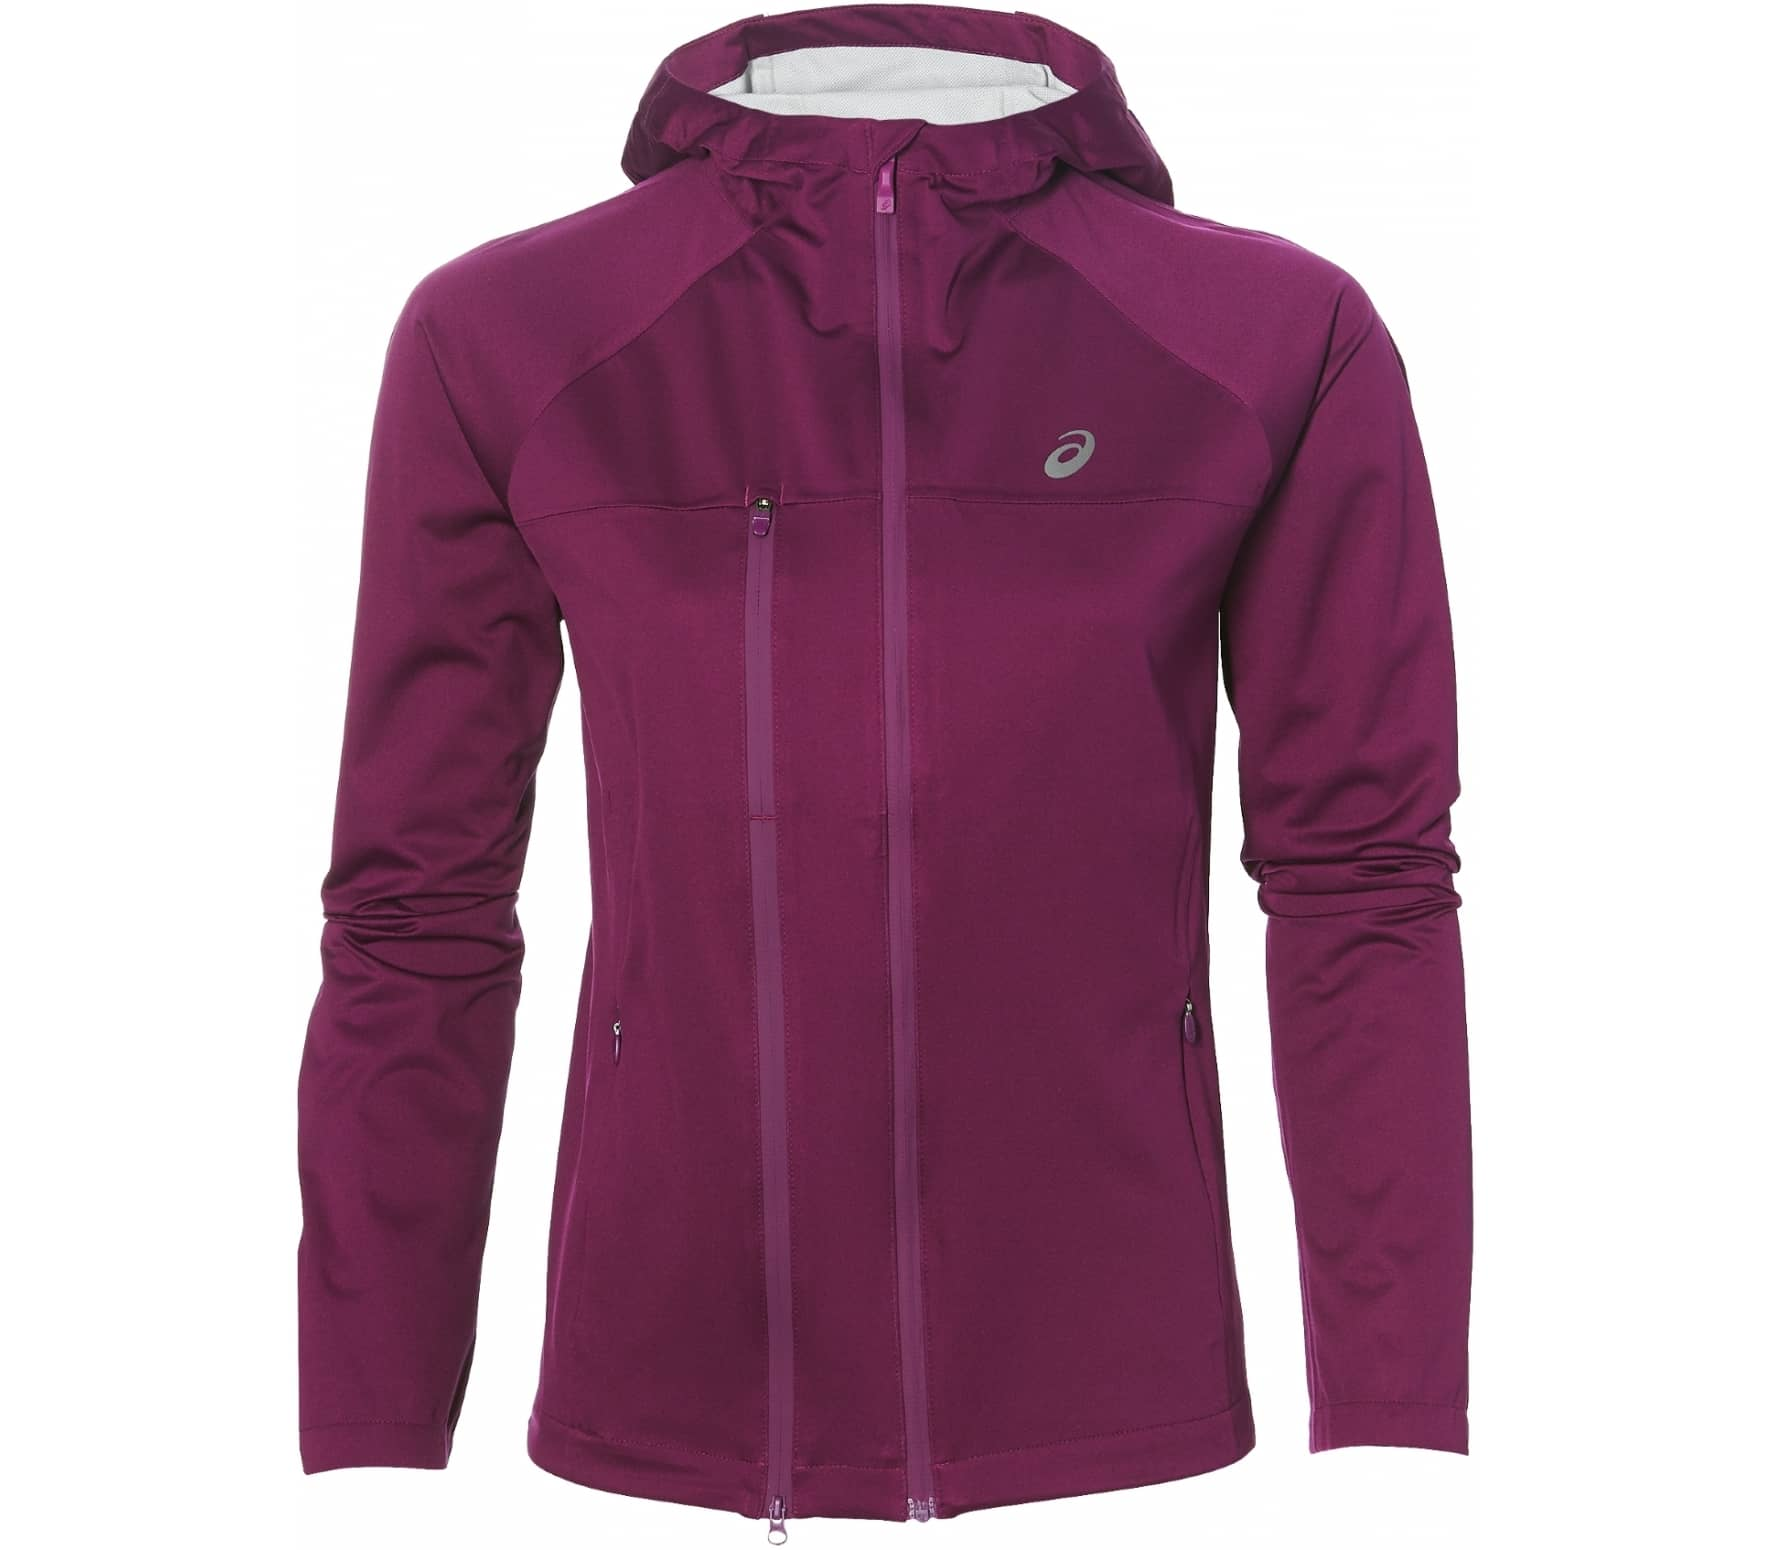 Asics - Accelerate women's running jacket (dark red) - XS thumbnail